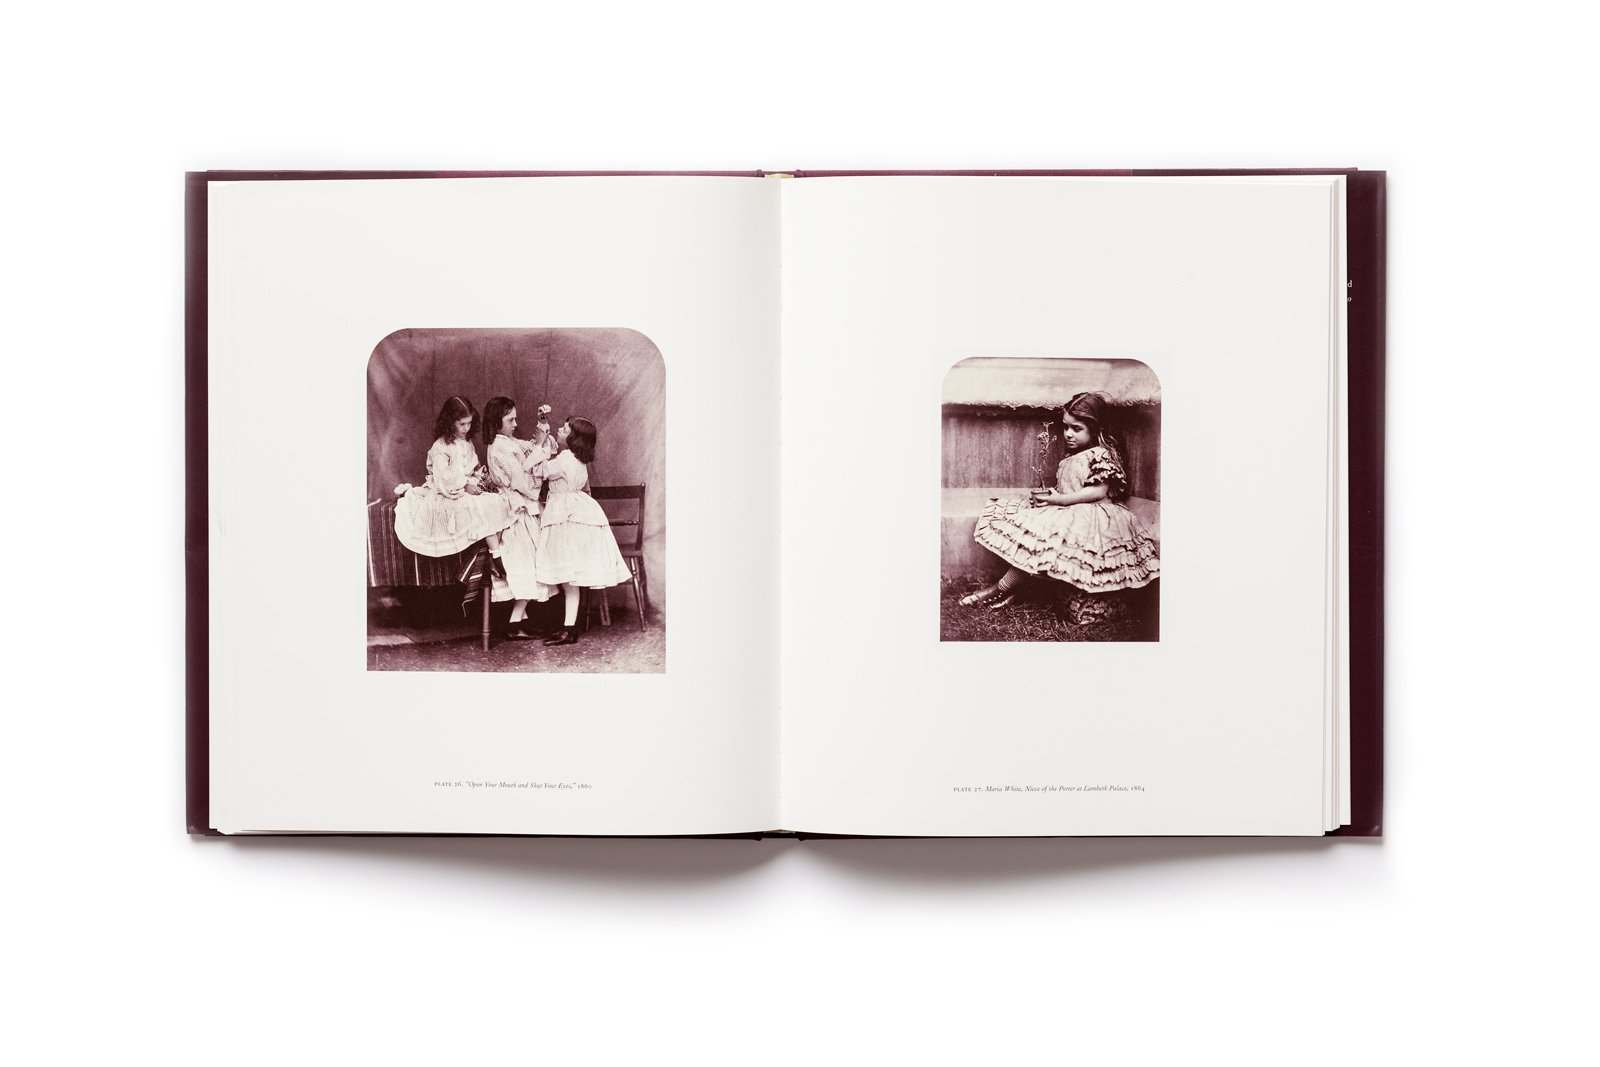 Dreaming in Pictures publication plates 26-27